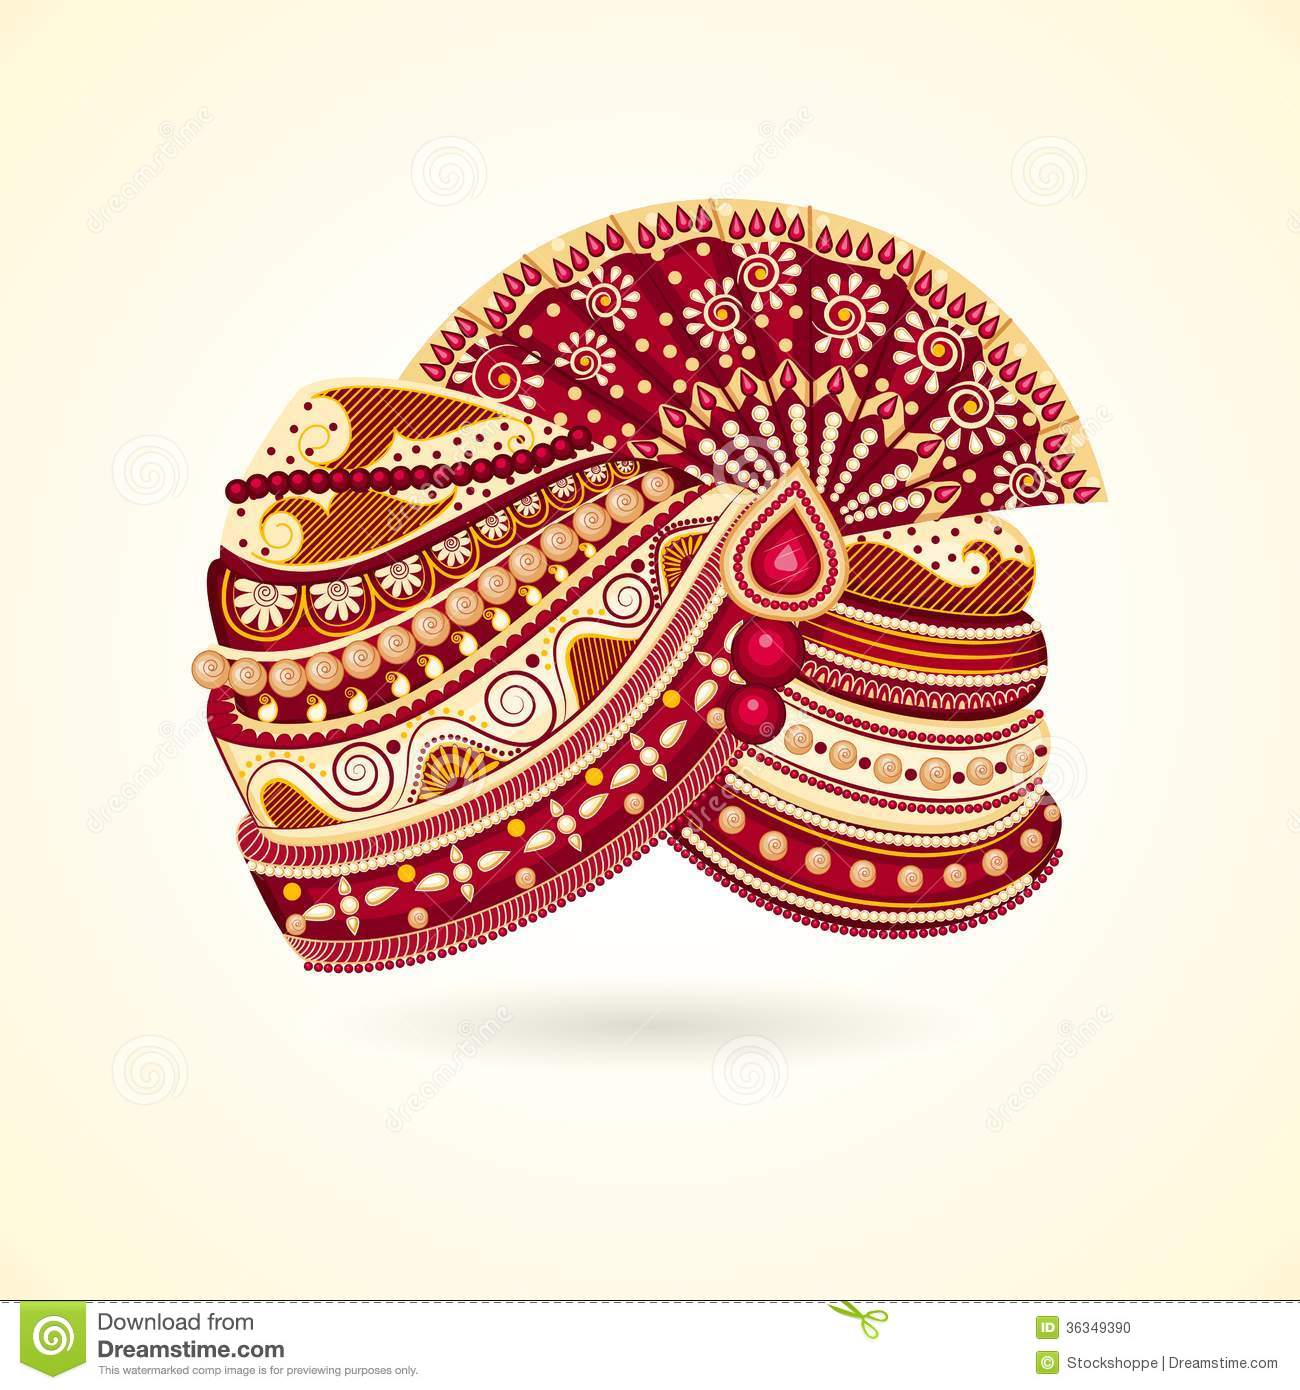 Vector illustration of colorful Indian turban for marriage.